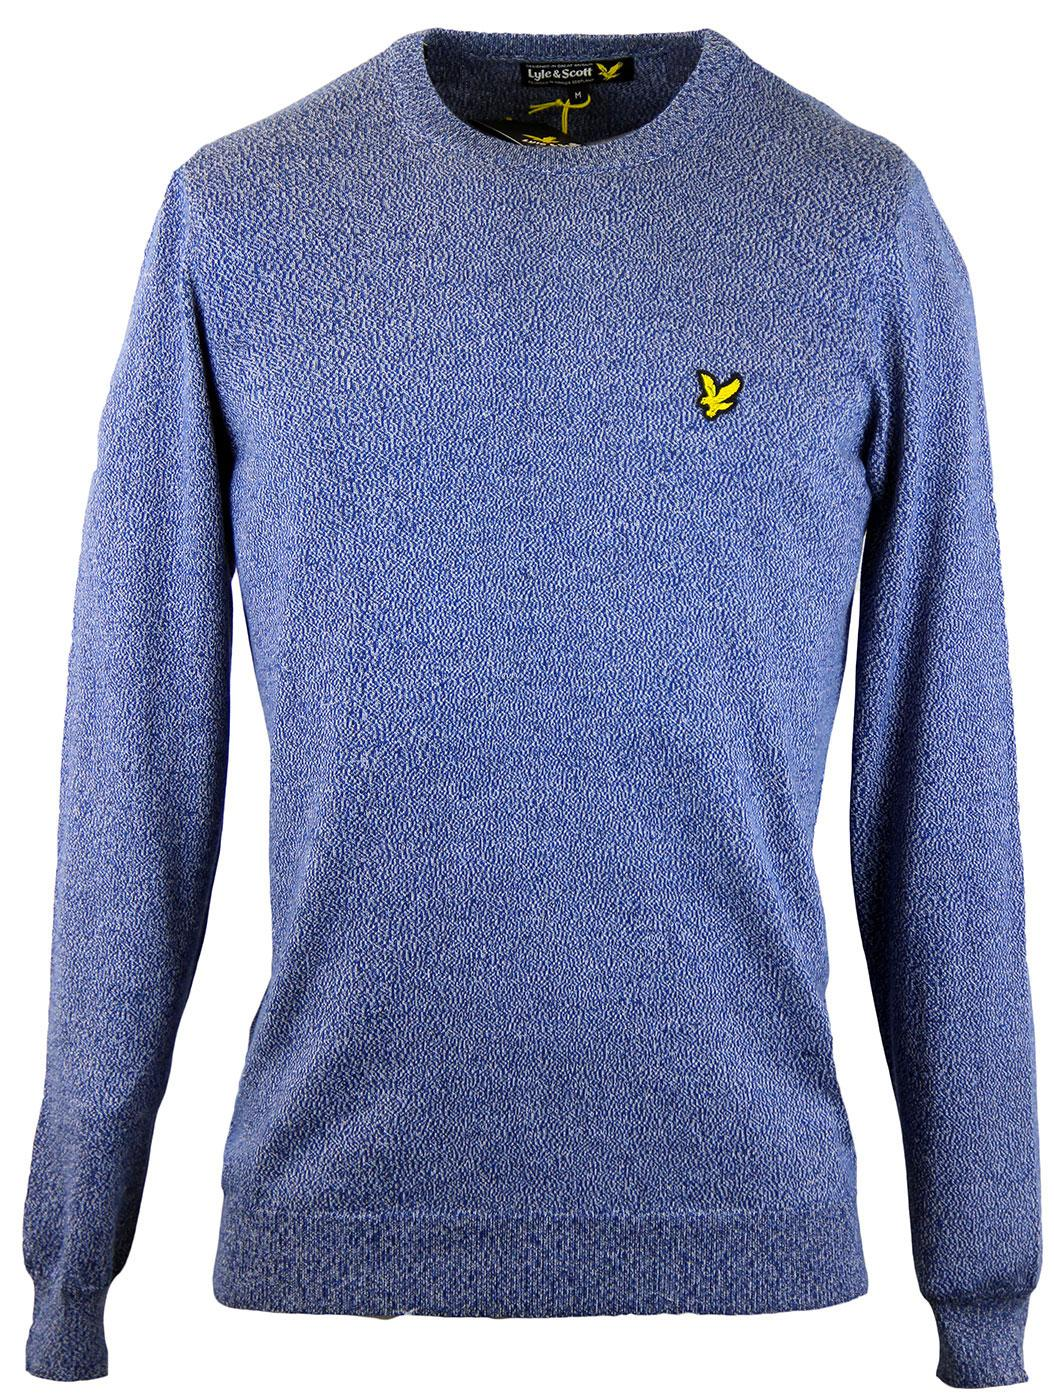 LYLE & SCOTT Retro Knit Crew Neck Mouline Jumper